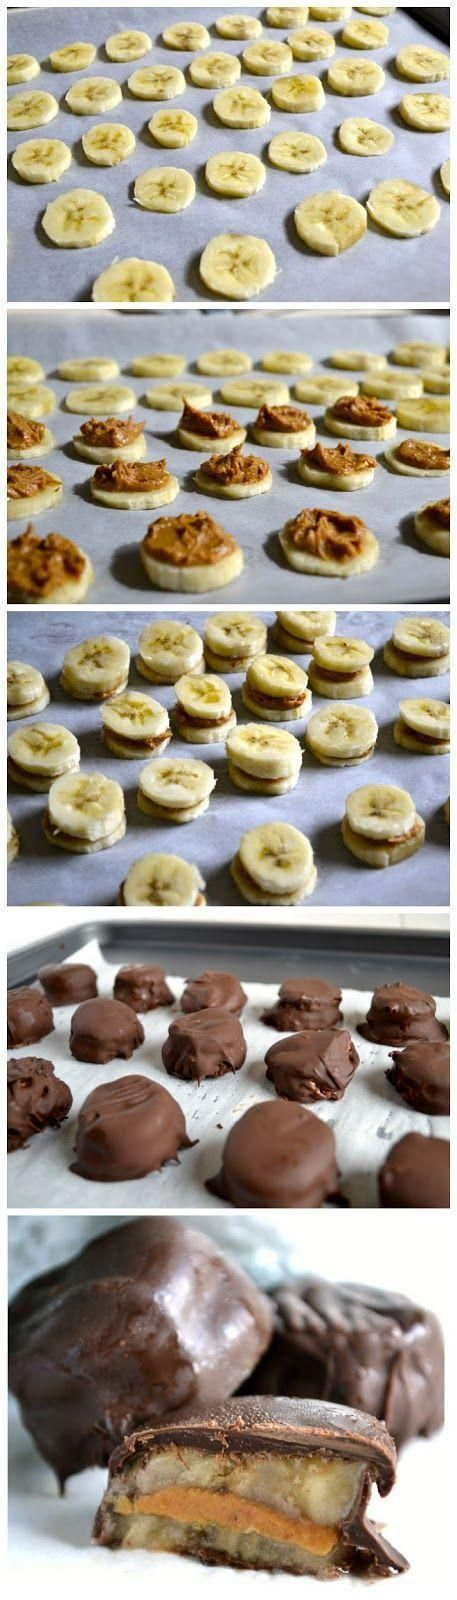 Chocolate Covered Frozen Banana and Peanut Butter Bites! What's not to love about this recipe #FITGIRLCODE #healthy #snacks #peanutbutter #chocolate